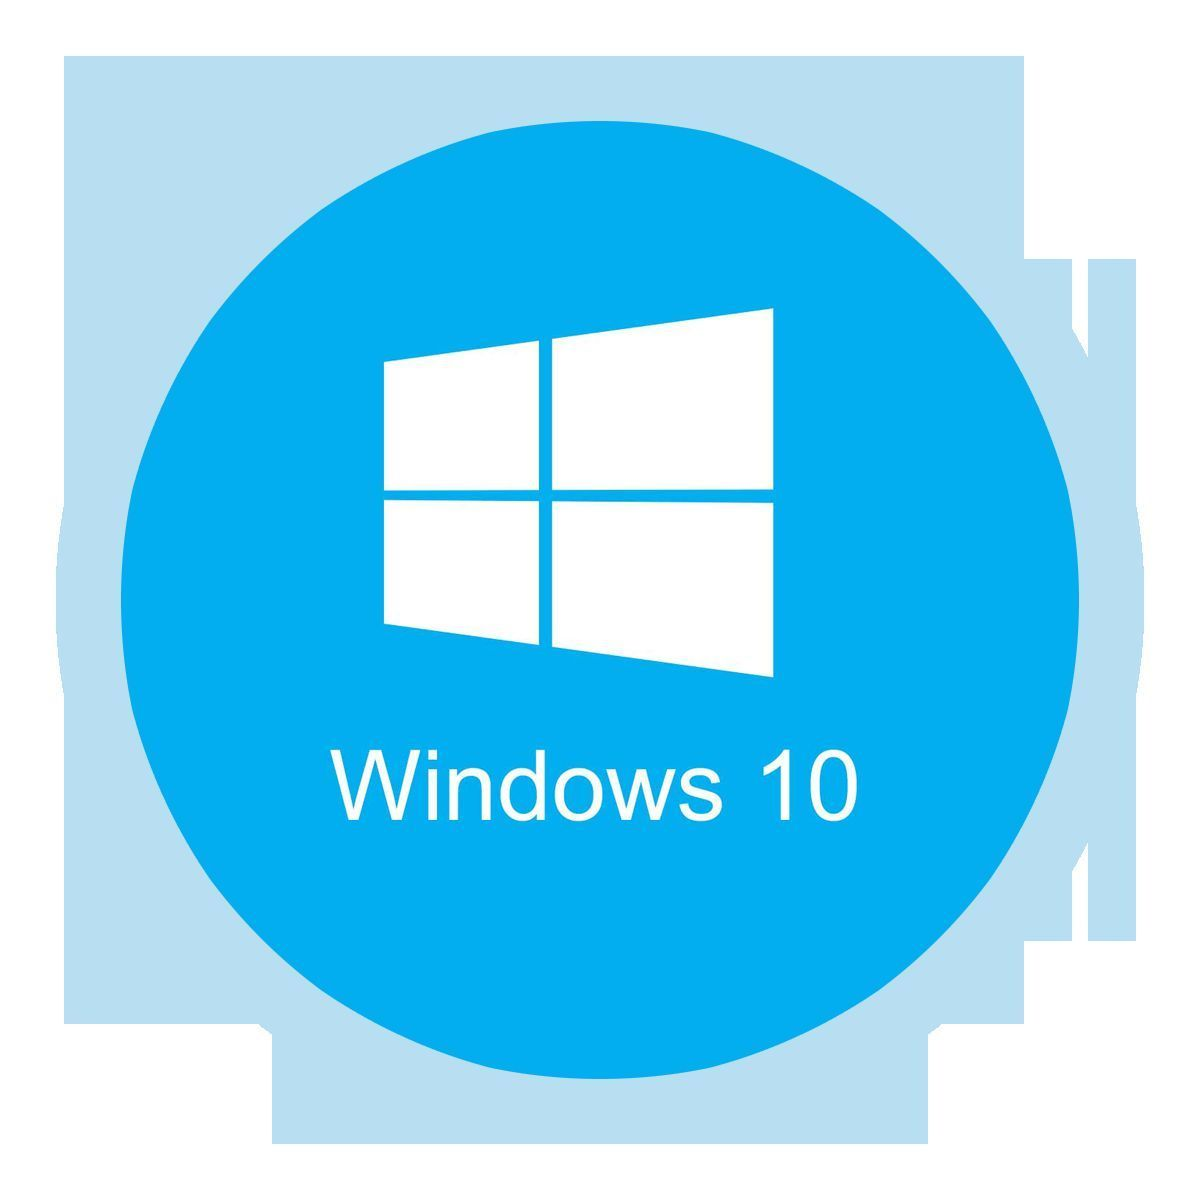 5 Pc Windows 10 Home To Professional Upgrade and 14 similar